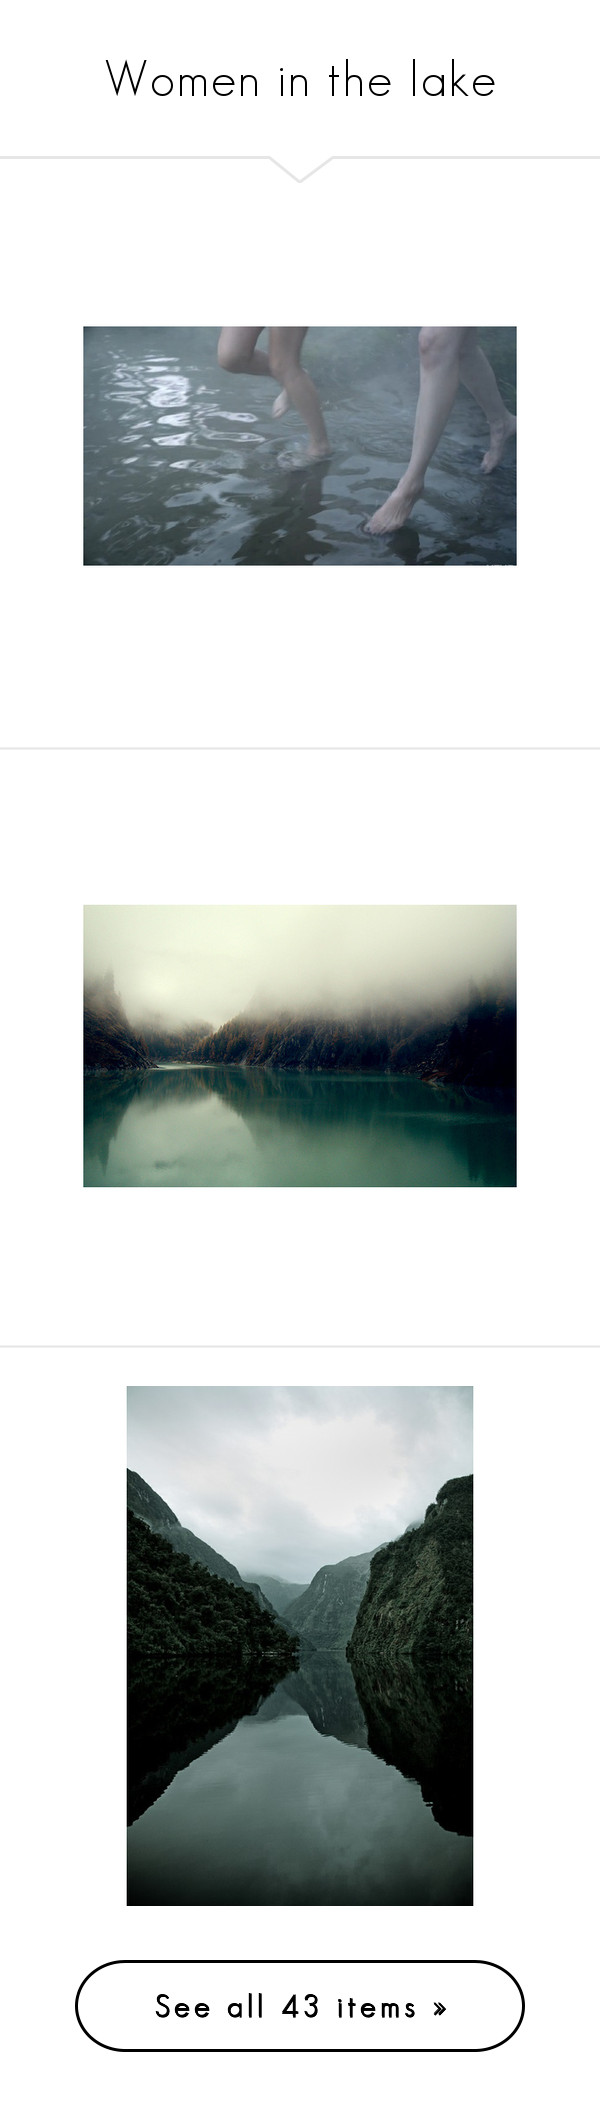 """""""Women in the lake"""" by lindseyrose4 ❤ liked on Polyvore featuring ocean, witch, Waterfall, lake, river, pictures, photos, backgrounds, blue and images"""